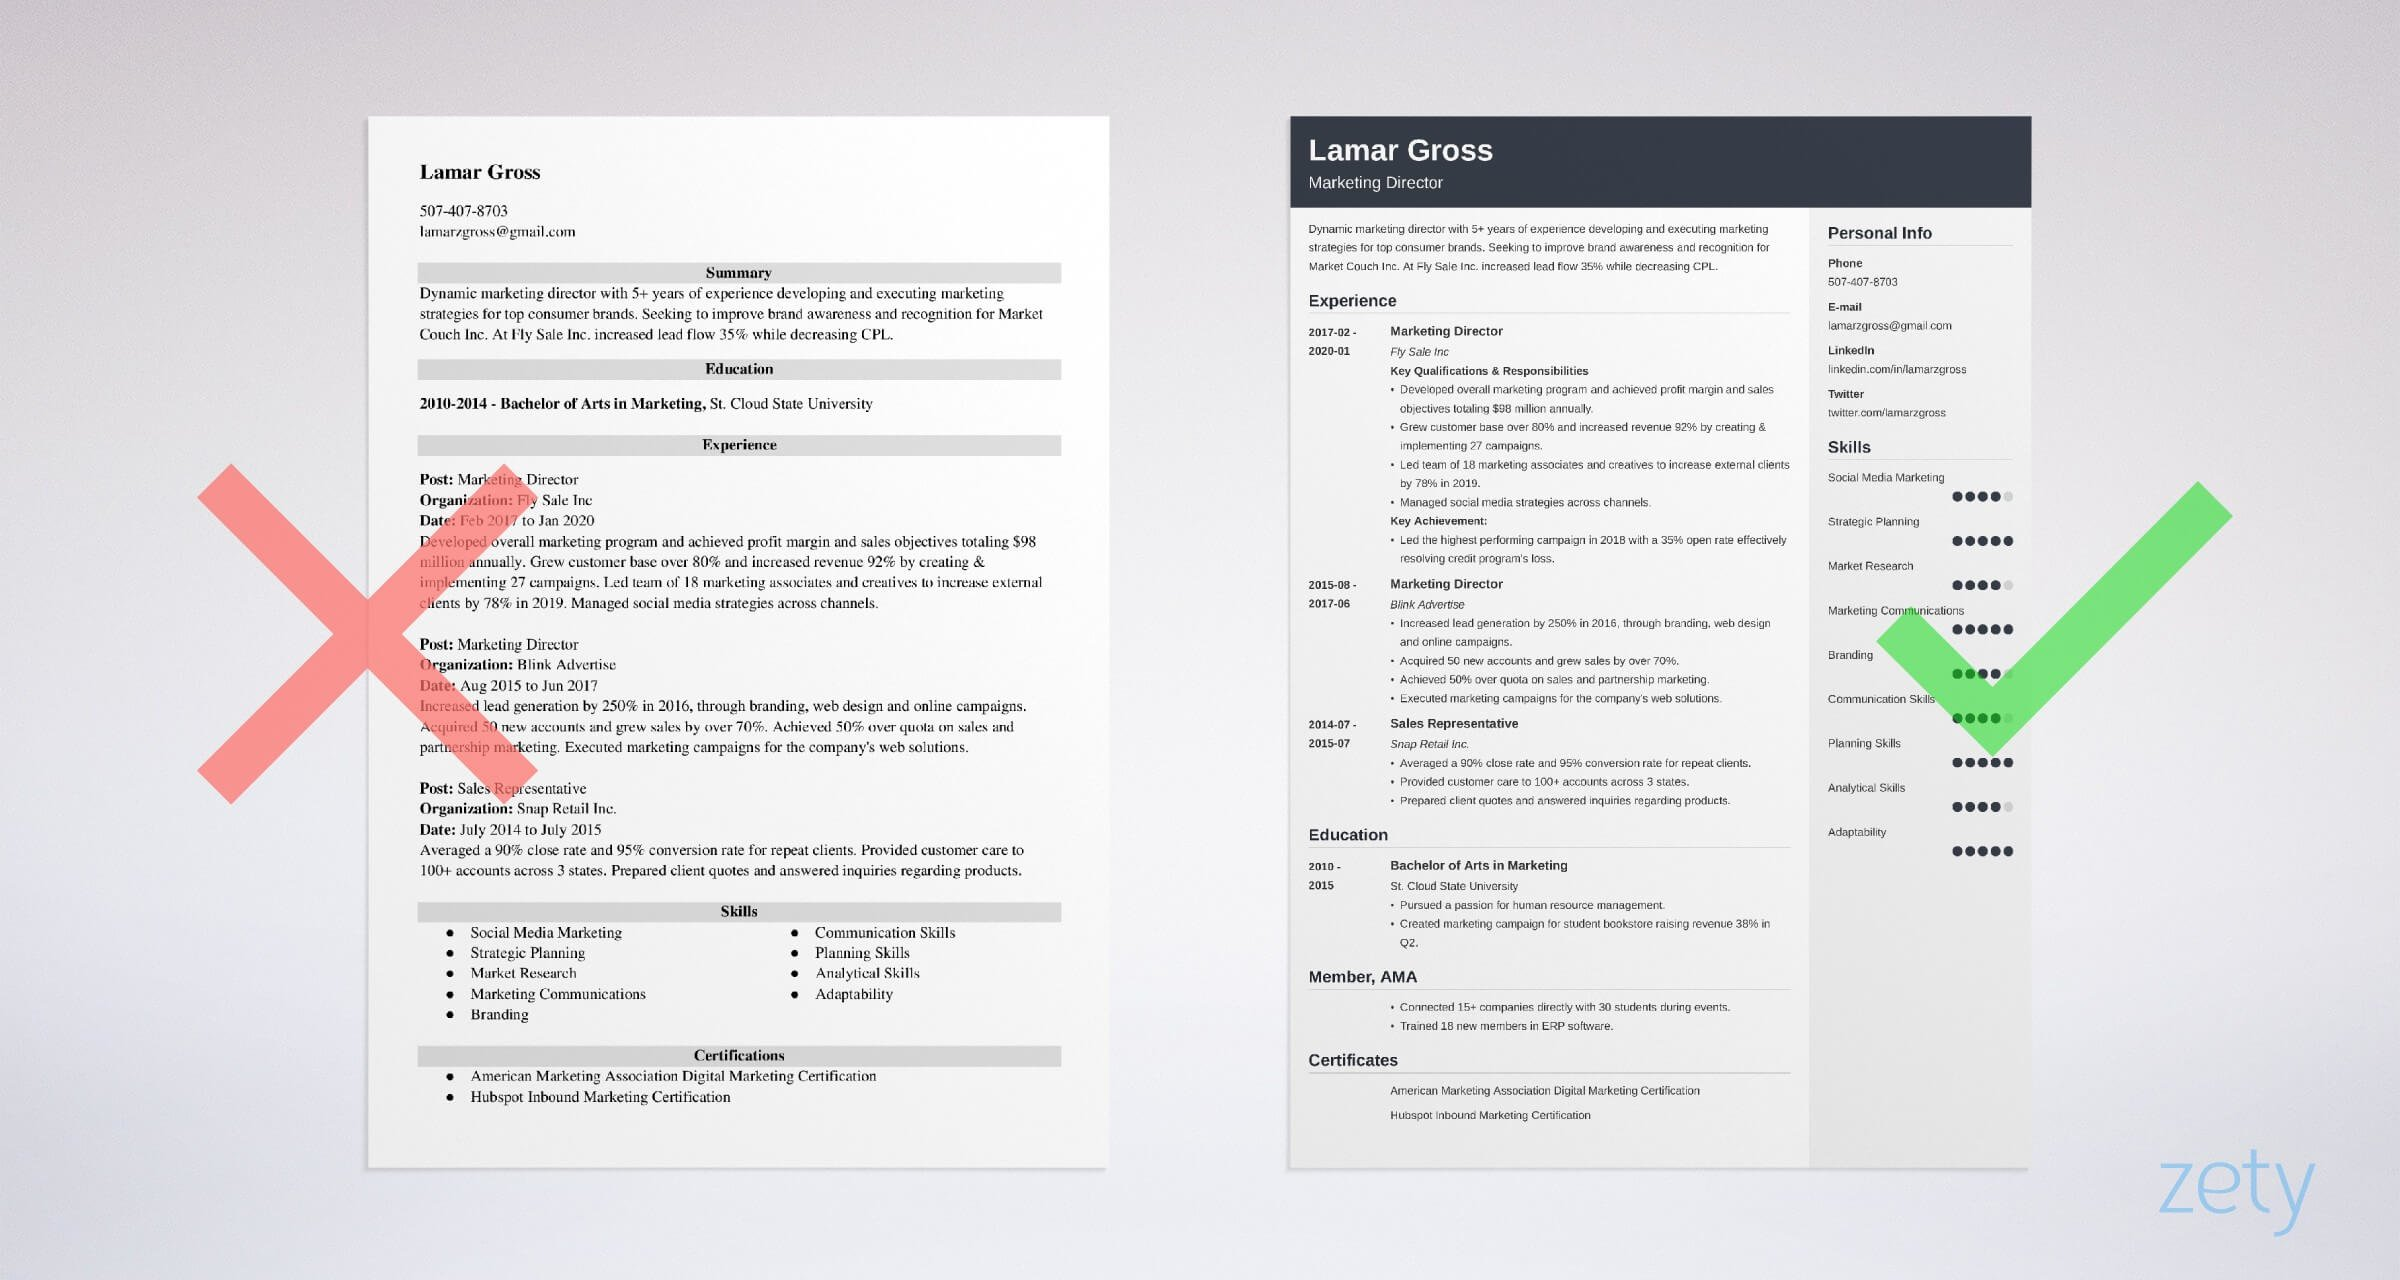 marketing director resume examples and guide samples example salesforce admin skill bars Resume Marketing Director Resume Samples